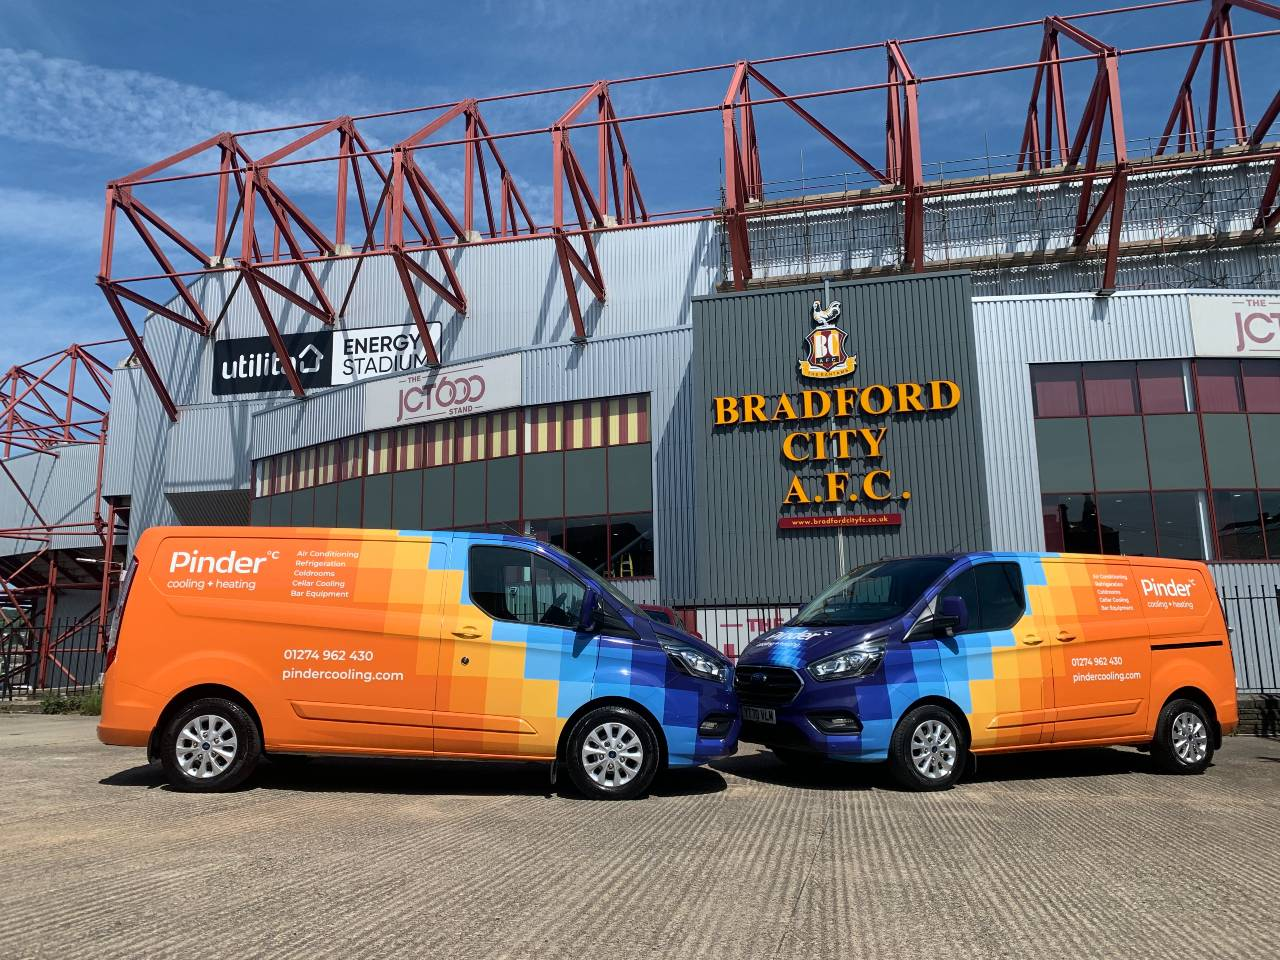 Pinder Cooling Providind Refrigeration Systems For Bradford City